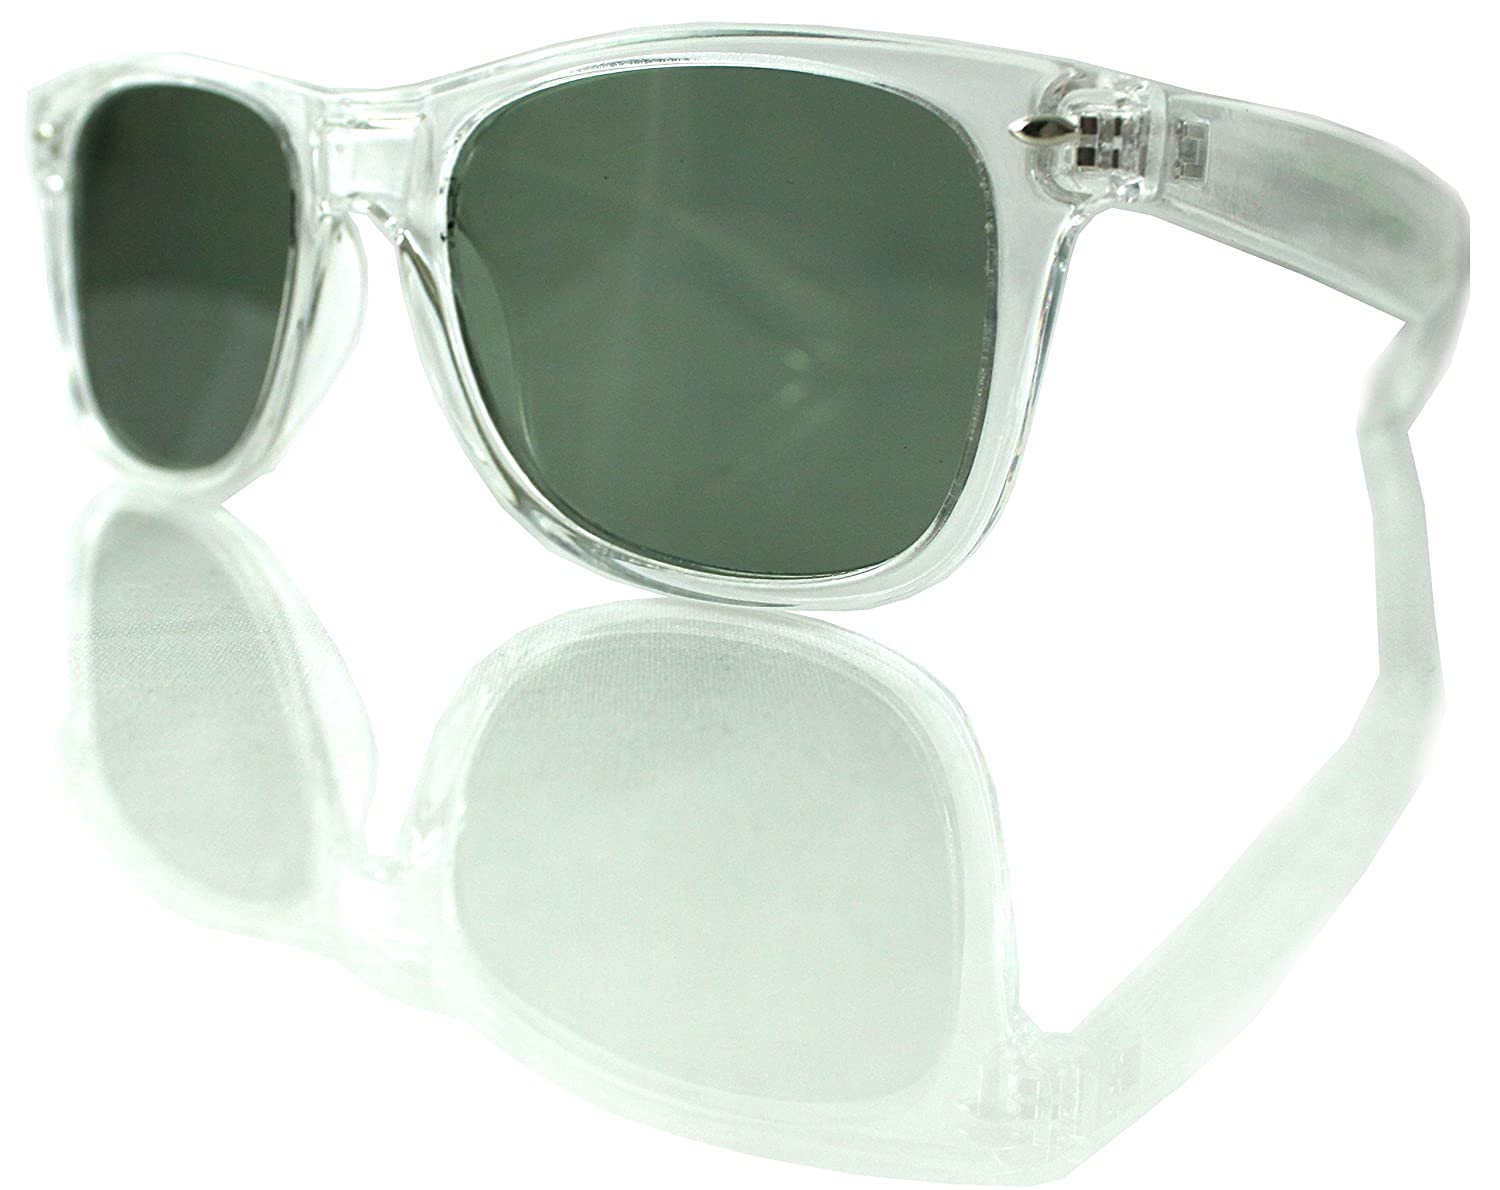 Transparent Clear Ultra Emerald Diffraction Glasses - Rave Glasses - Prism Shades - Light Show Glasses